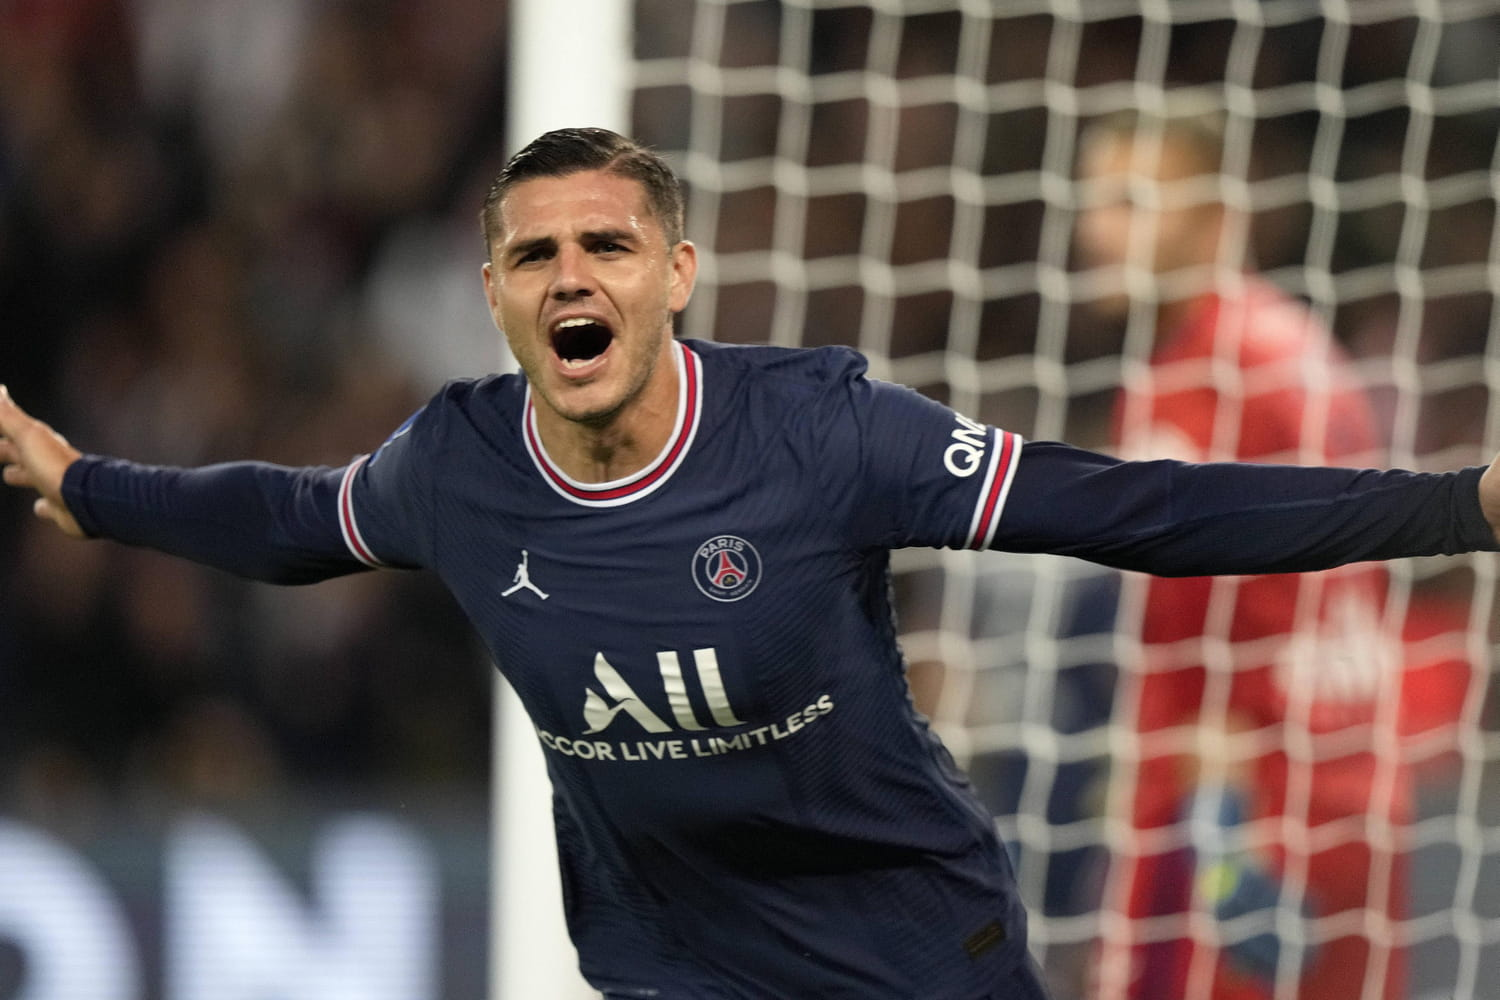 PSG - Lyon: notes, reactions, summary ... The debrief of the match